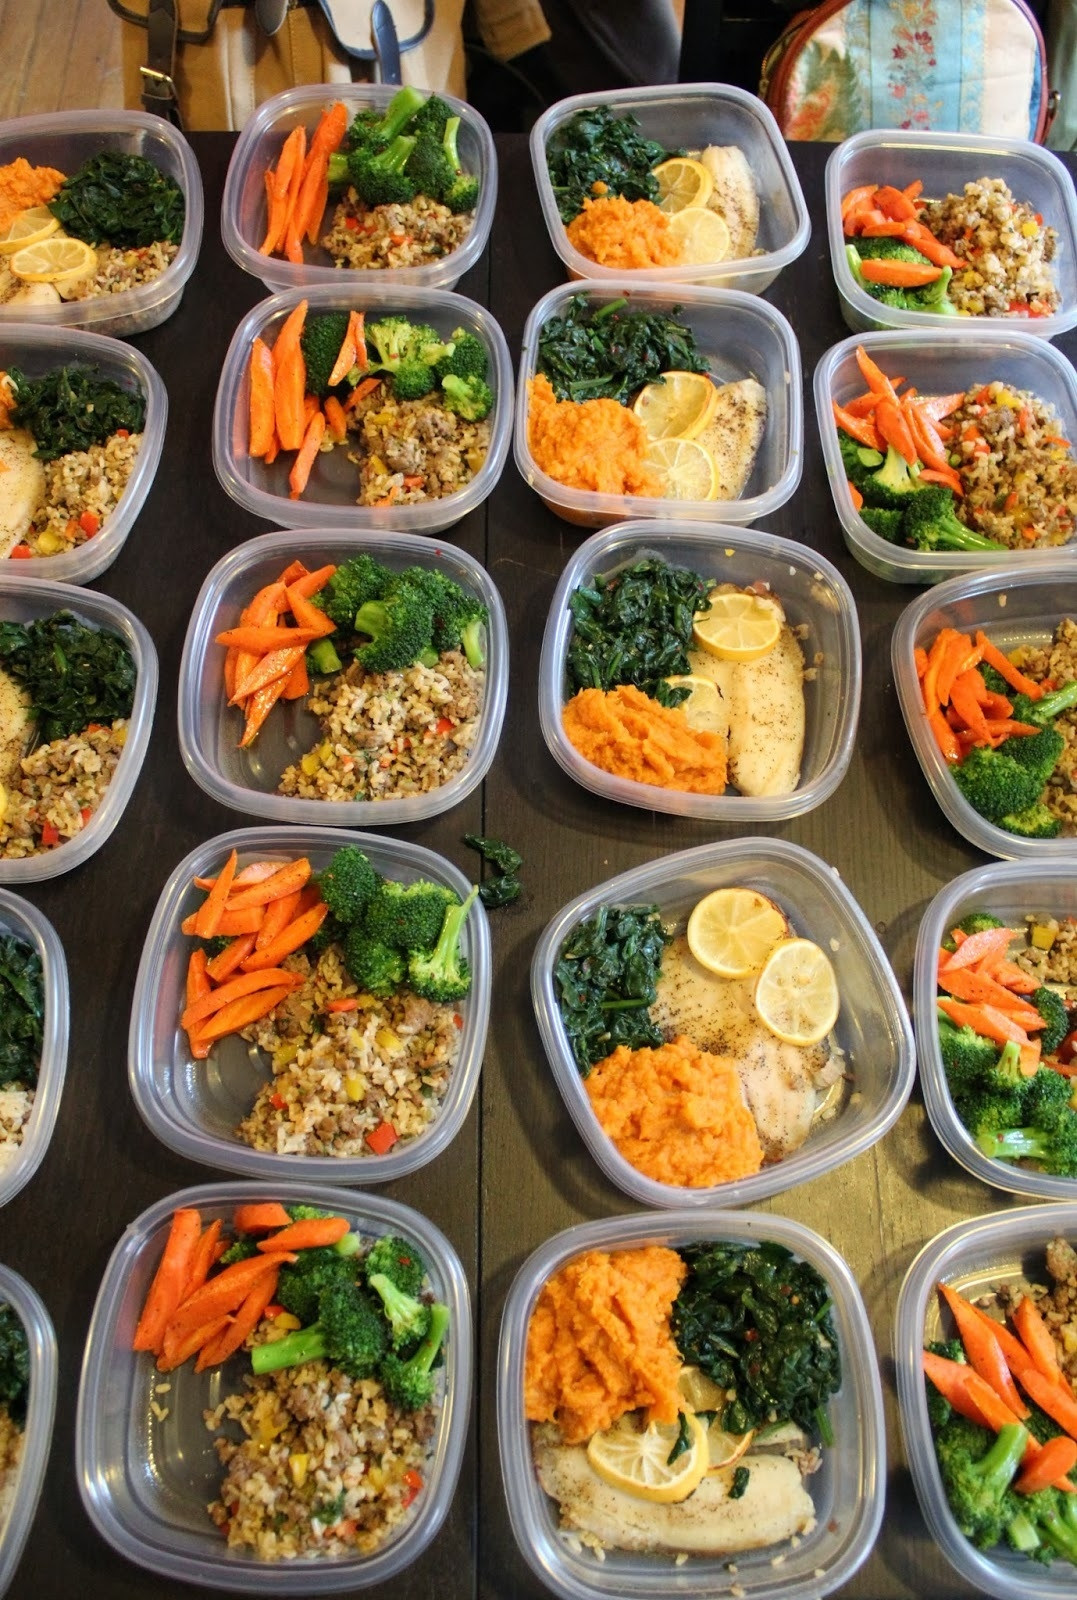 Healthy Lunches For The Week  Healthy Meal Prep Ideas For The WeekWritings and Papers